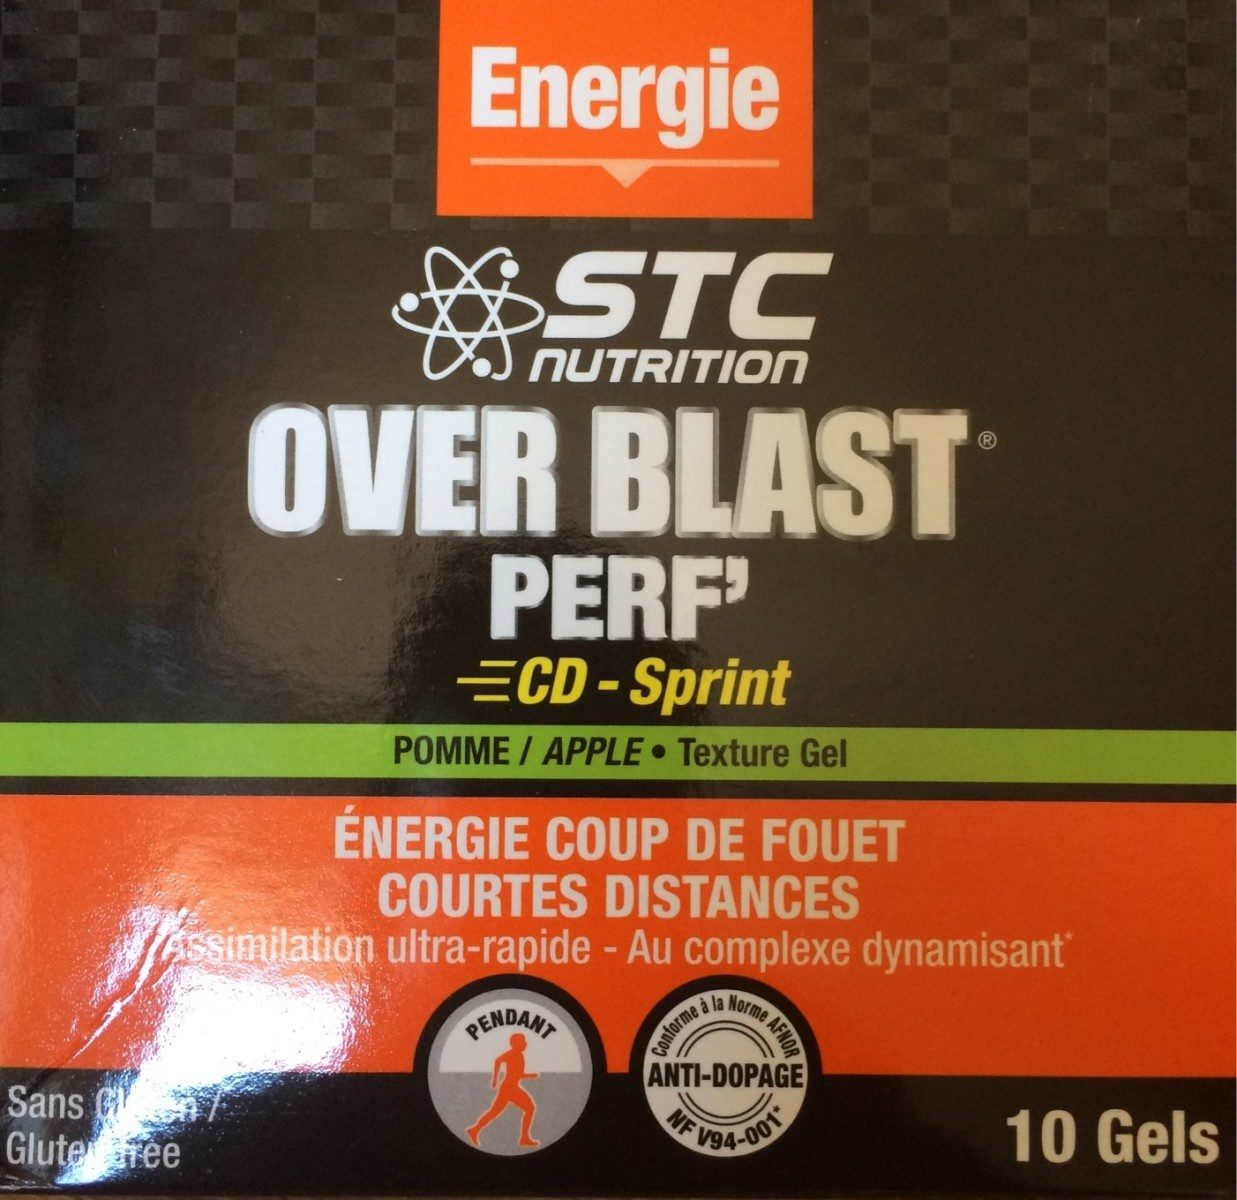 Overblast Perf' Cd-sprint Pomme - 10 Gels - STC Nutrition - Product - fr